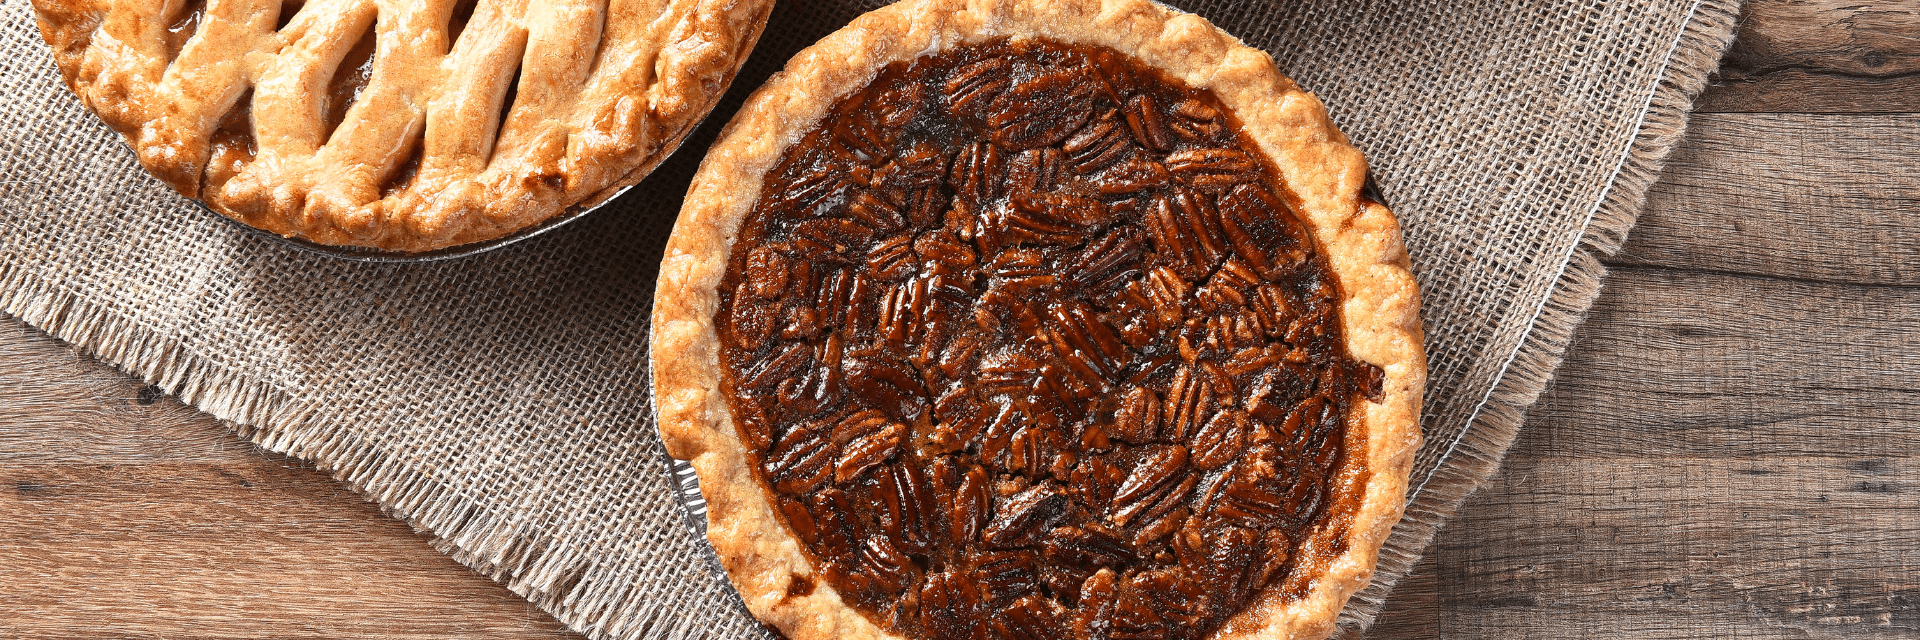 a selection of 3 thanksgiving pies